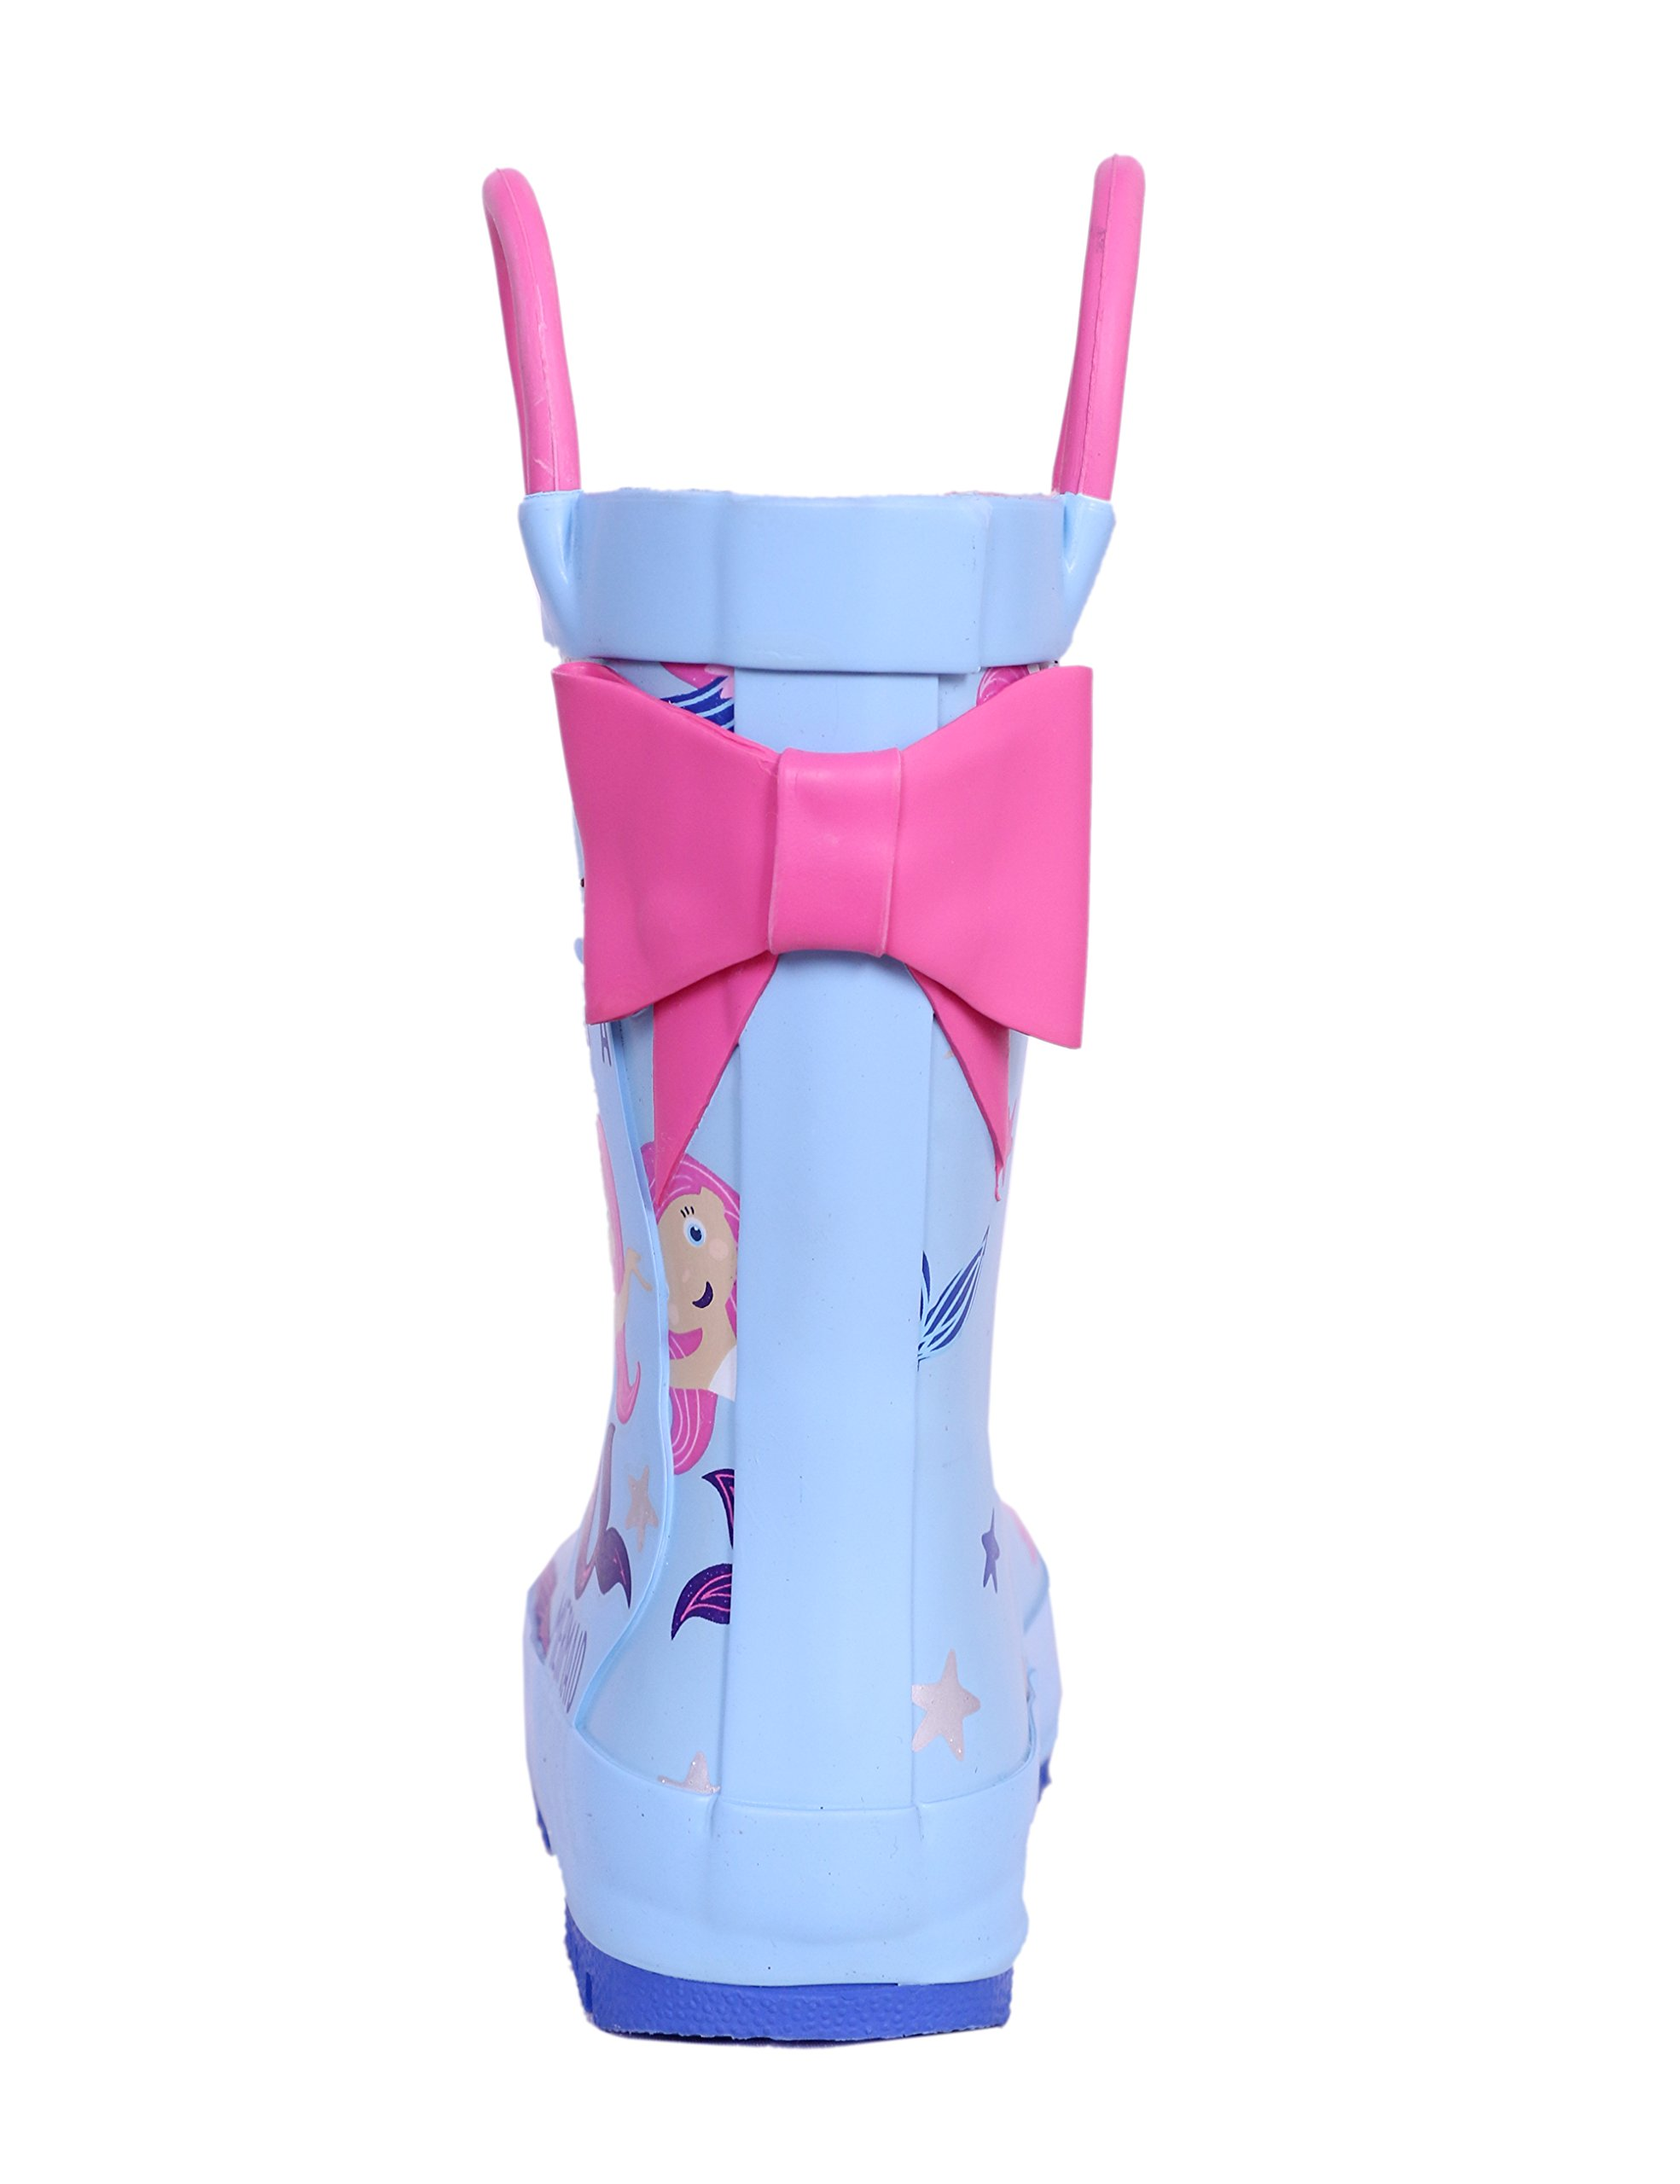 SHOFORT Girls' Rain Boots Rubber Handles Toddler, Size 9 by SHOFORT (Image #3)